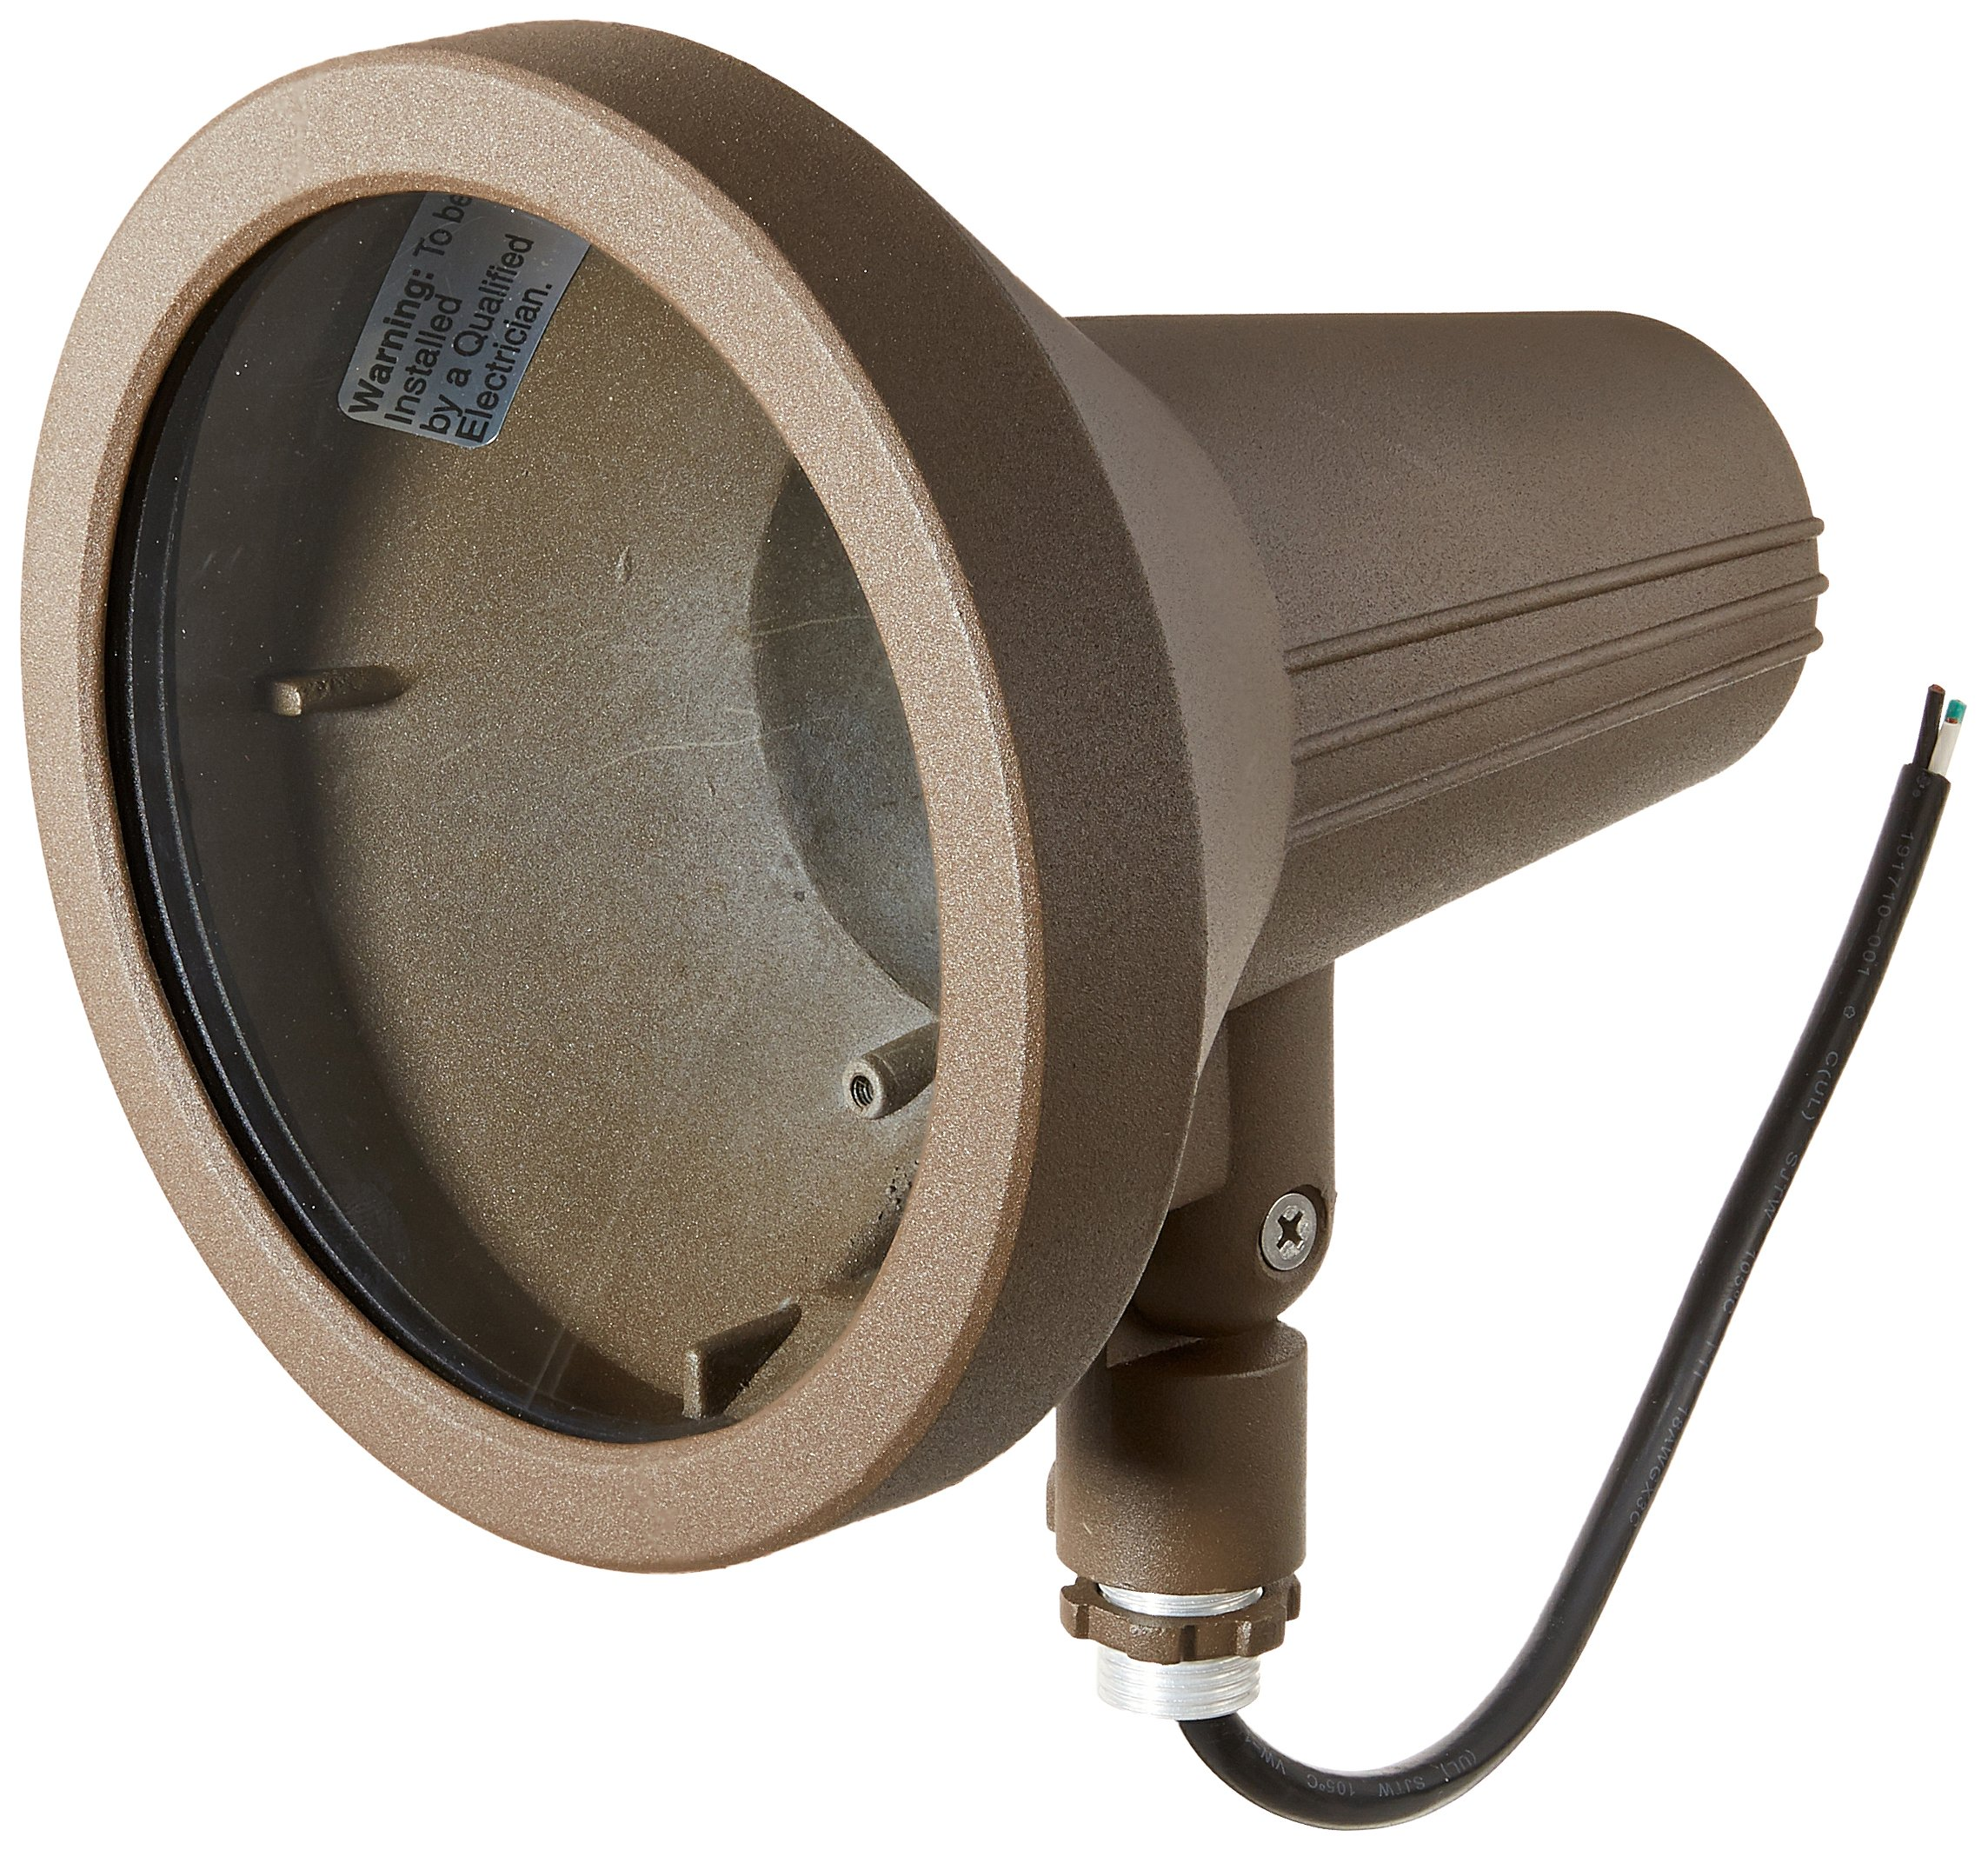 Dabmar Lighting DPR40-BZ Spot Light with no Shades, Bronze Finished